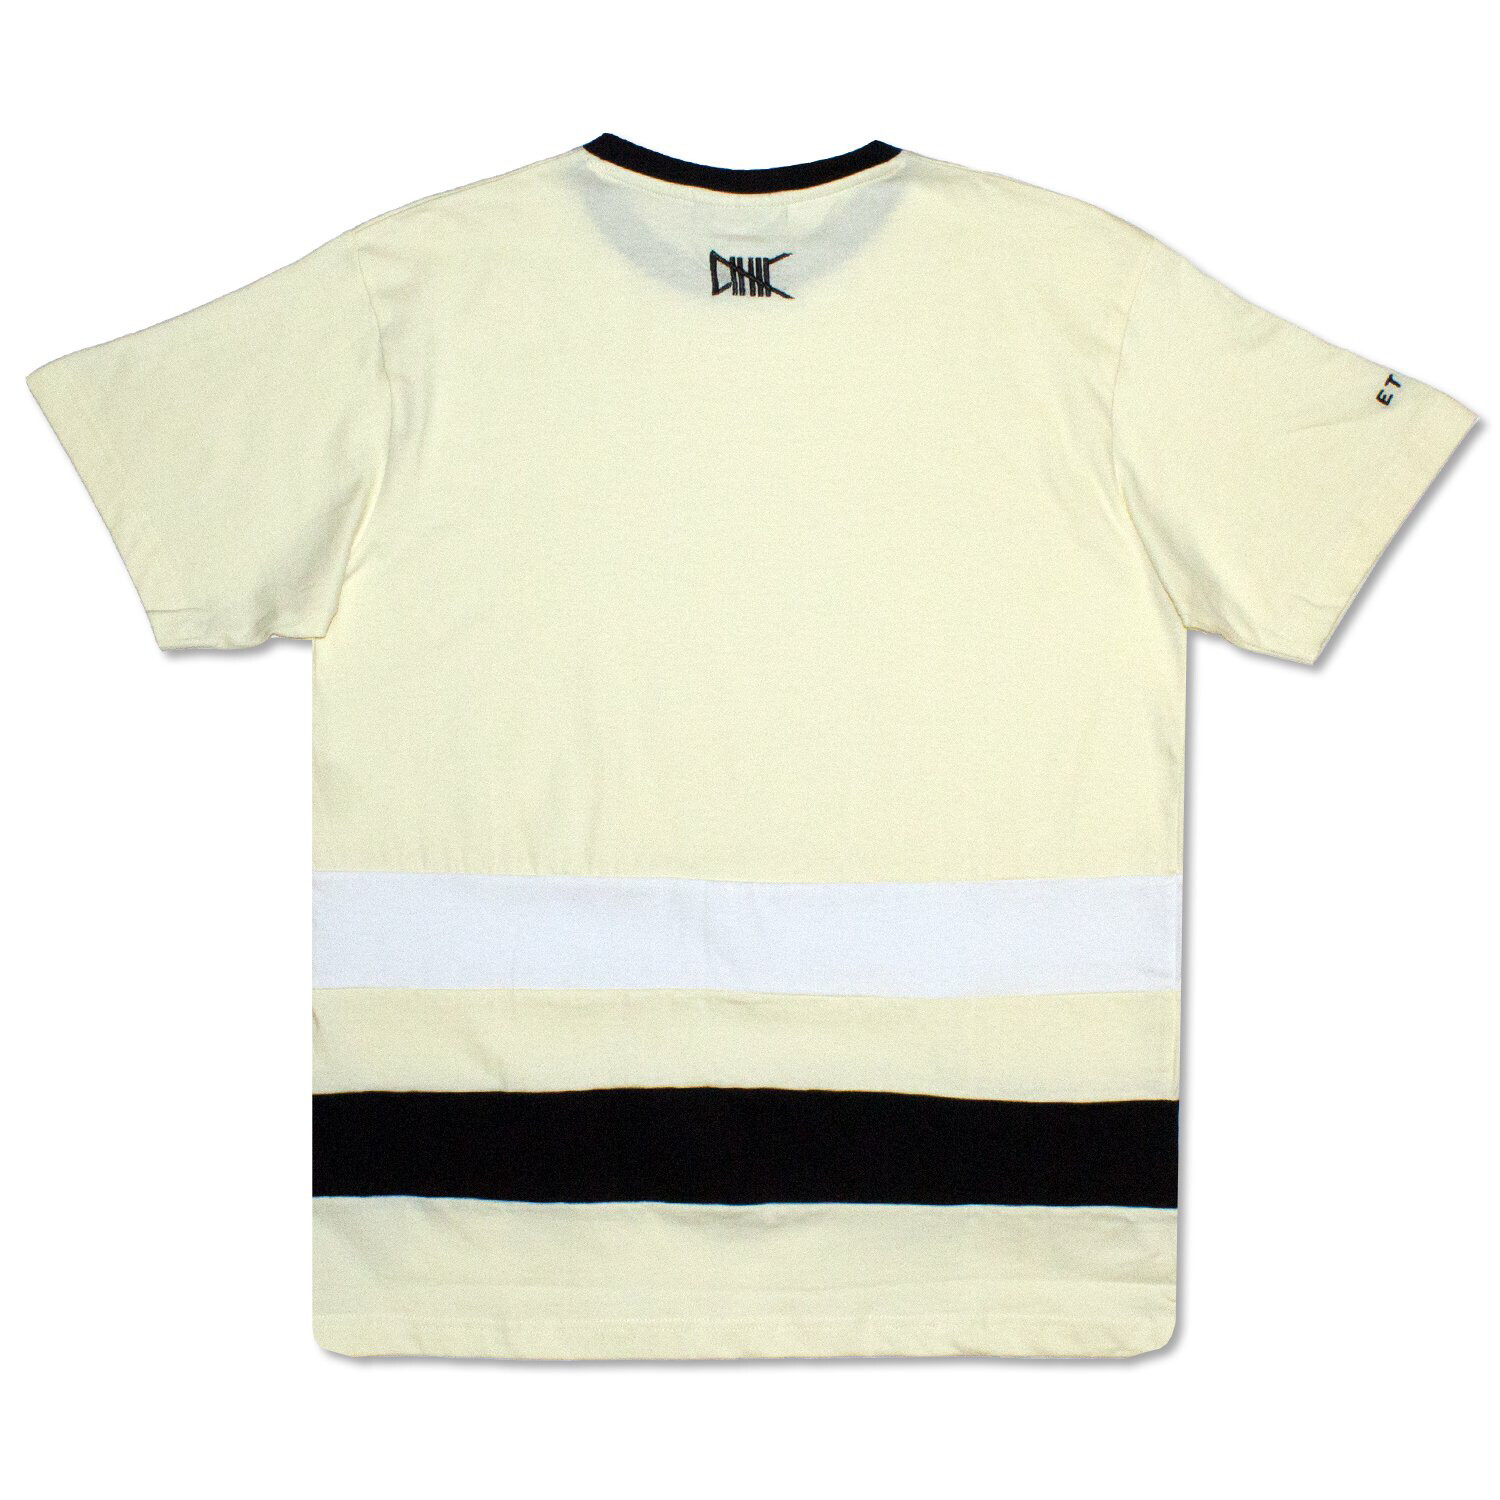 Ethik - Yellow/Black White Line Tee